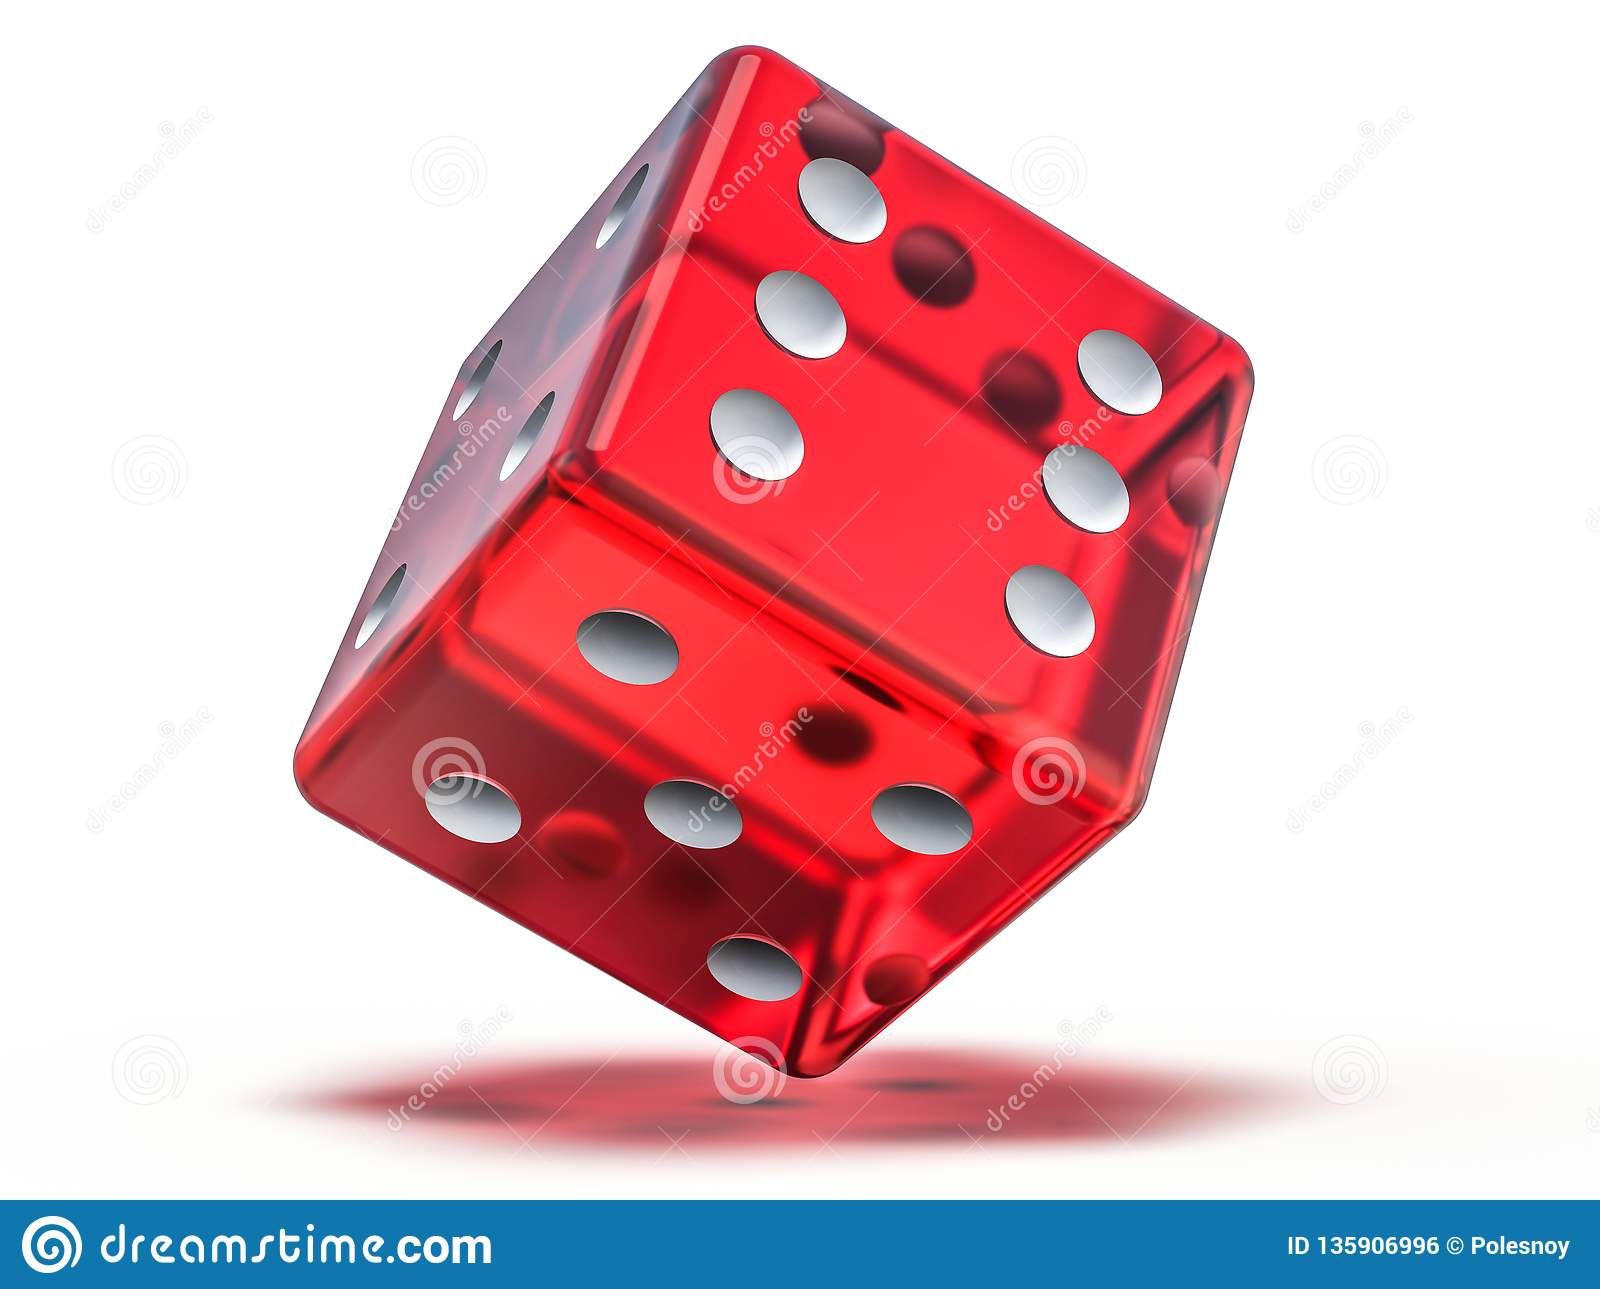 Red glass playing dice isolated on white background. 3D